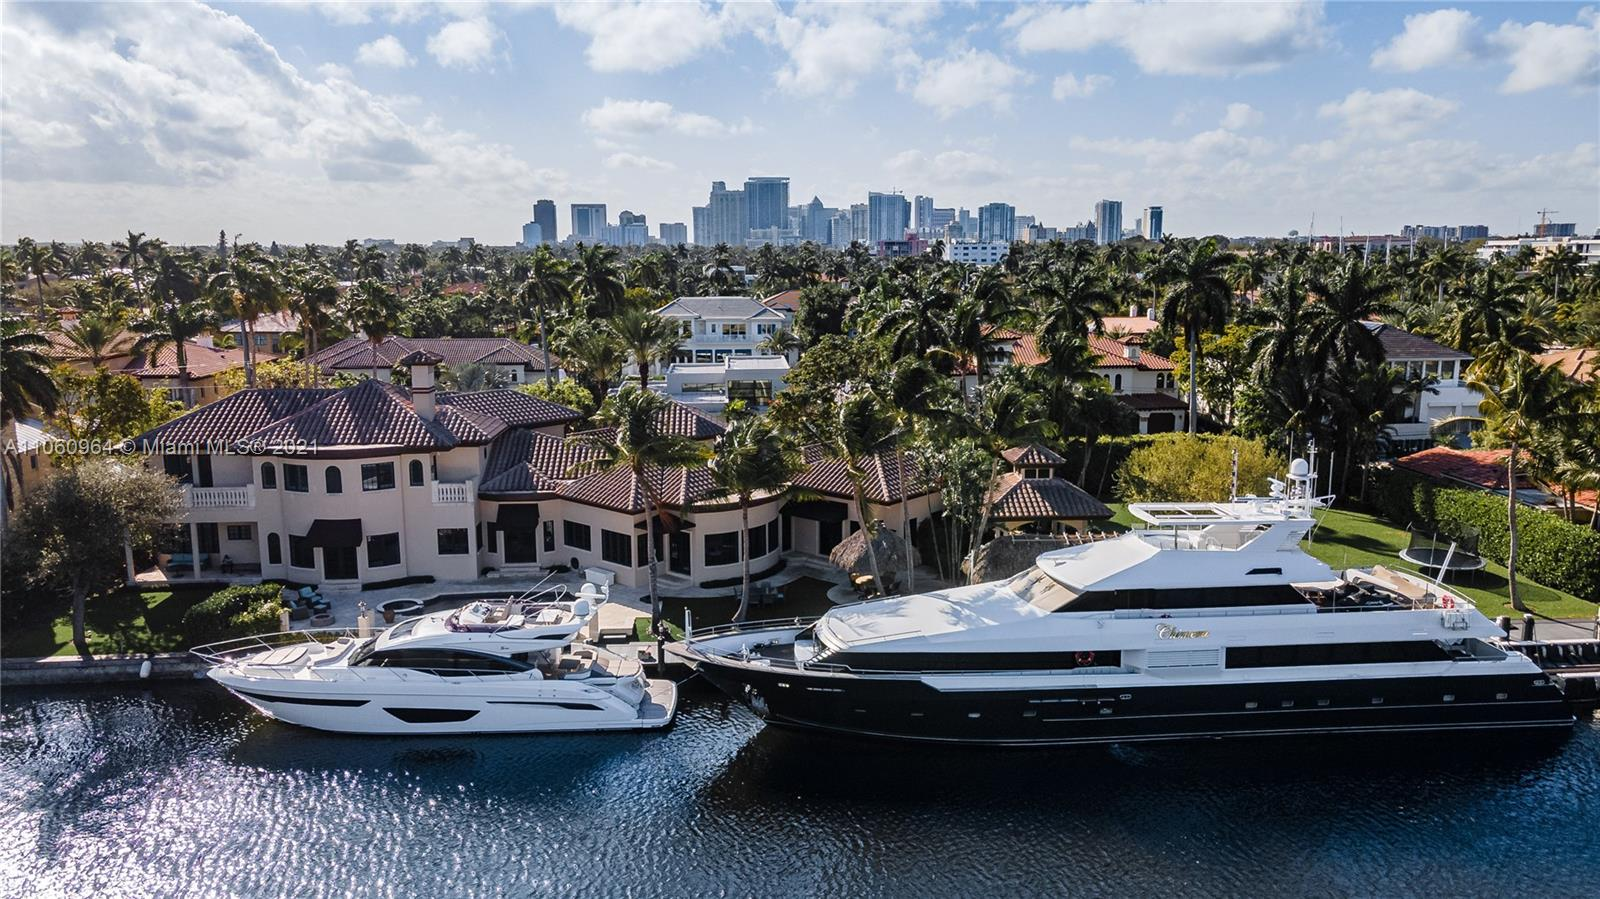 BEAUTIFUL 275' WATERFRONT HOME ON A 33,000 SQ FT LOT, FEATURING EXPANSIVE WATERWAY VIEWS IN THE MIDDLE OF LAS OLAS ISLES. SPACIOUS OUTDOOR ENTERTAINING AREA COMPLETE WITH A POOL, SPA, WETBAR, KITCHEN, TIKI PAVILION & DINING AREA. STUNNING MODERN INTERIOR ACCOMPANIED BY LUXURIOUS STAIR CASES, HUGE DOORS, AND INCREDIBLE KITCHEN.